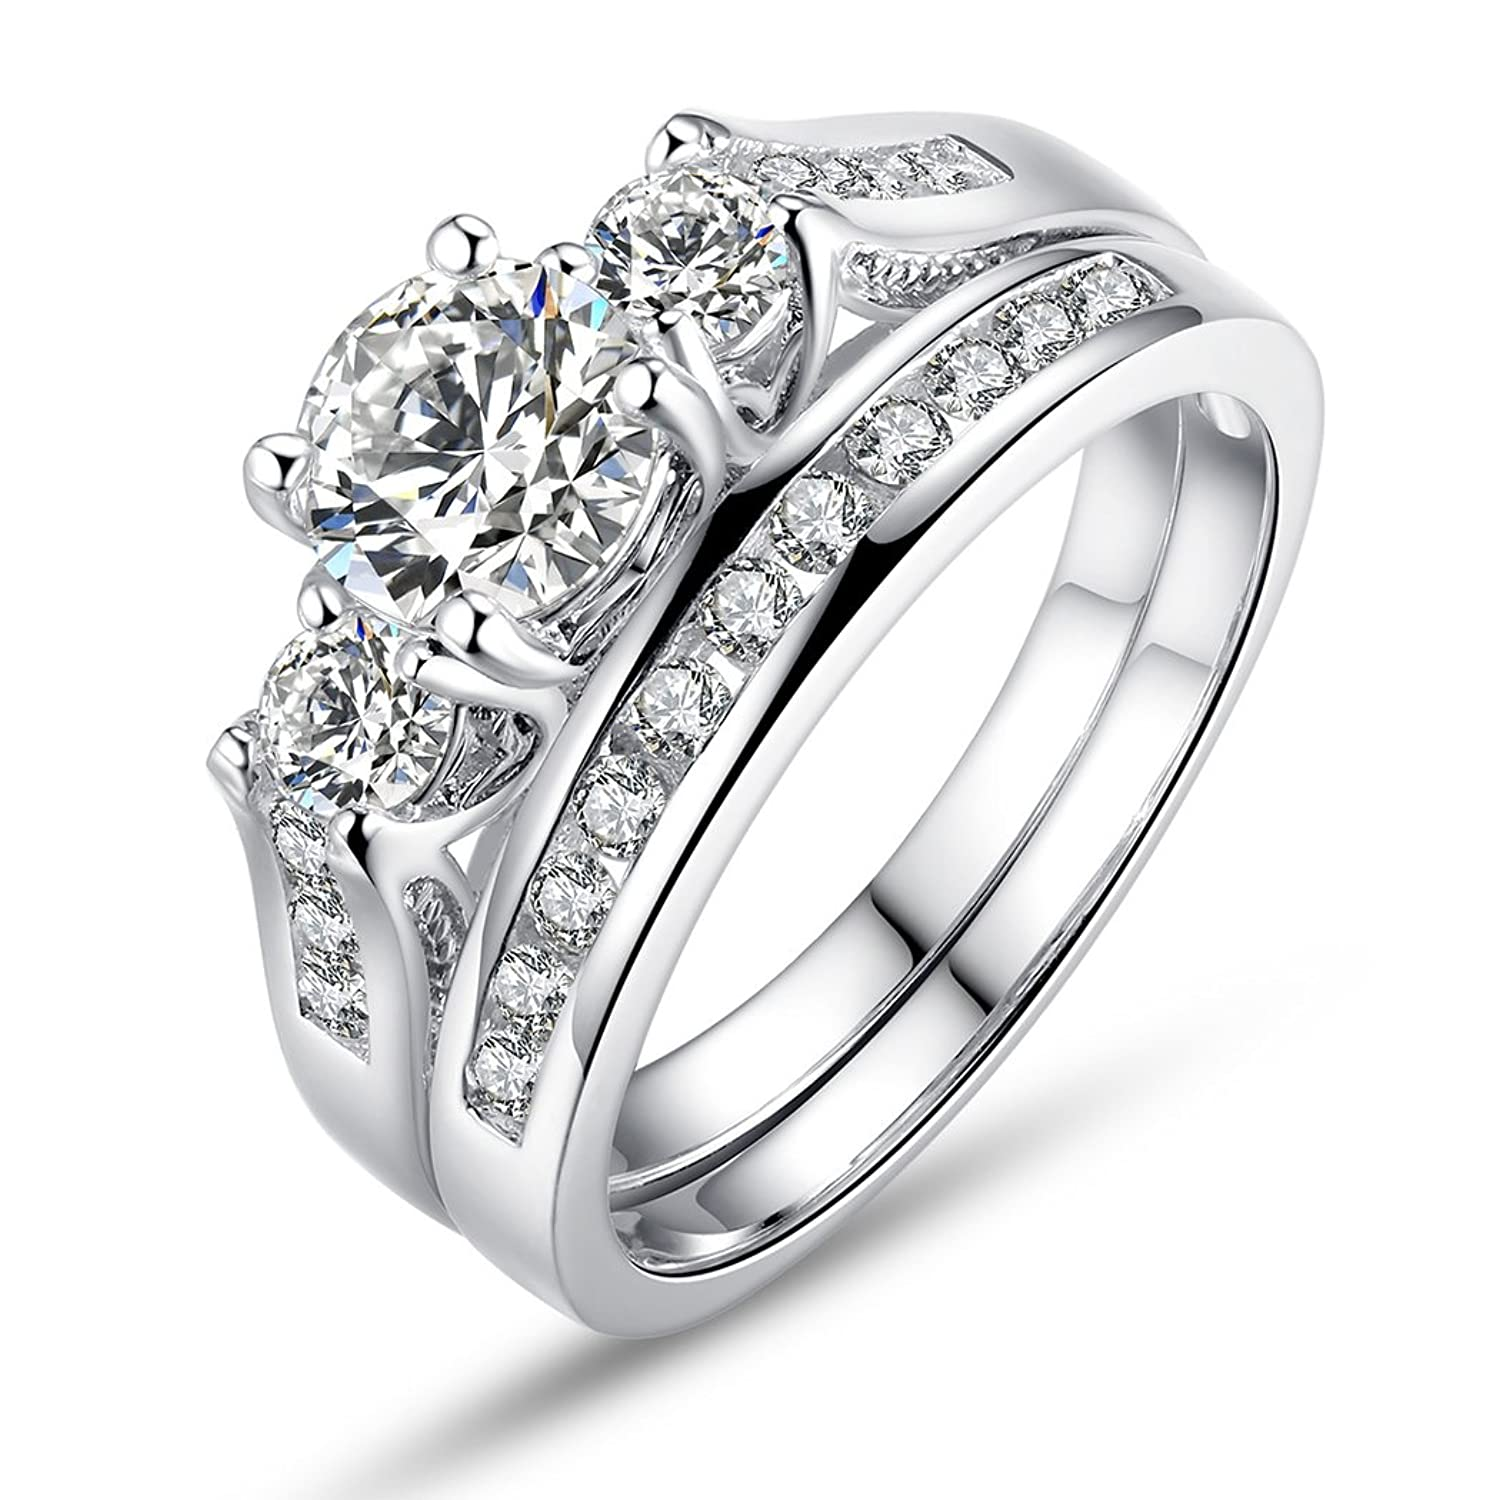 cz engagment rings silver jewelry sterling vintage wedding set sgr ring bling ct engagement